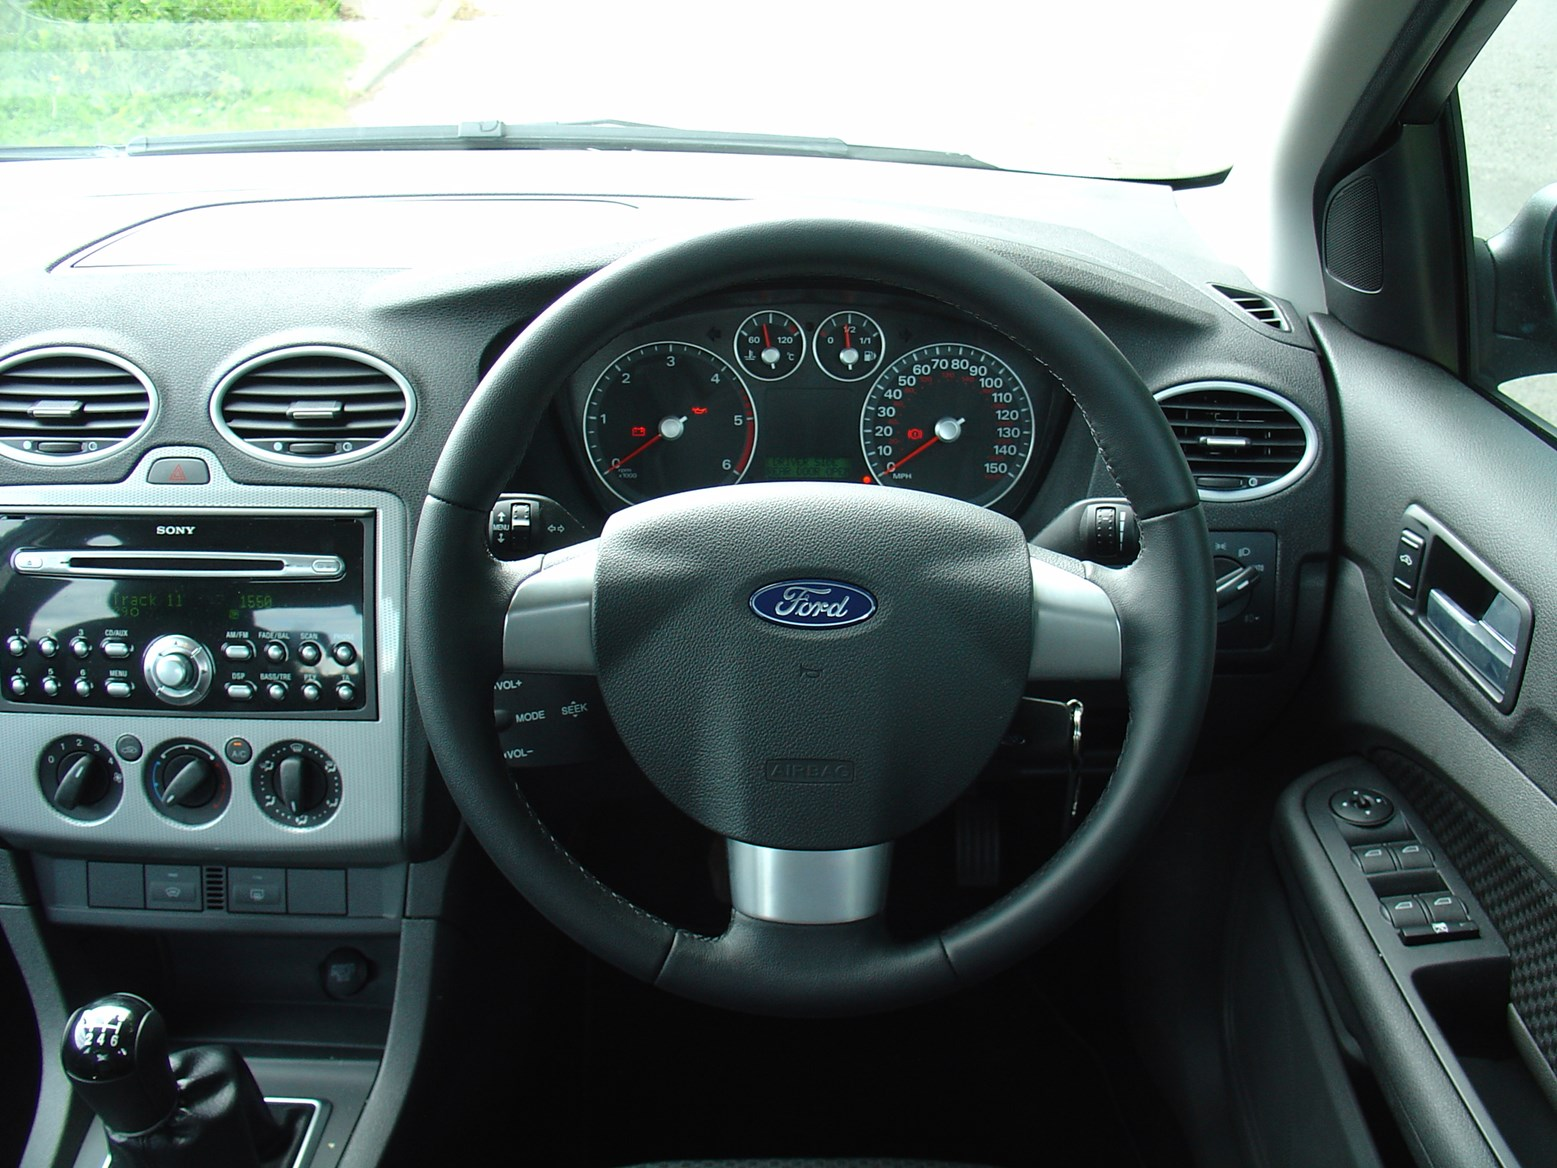 Ford Focus Saloon Review 2005 2009 Parkers